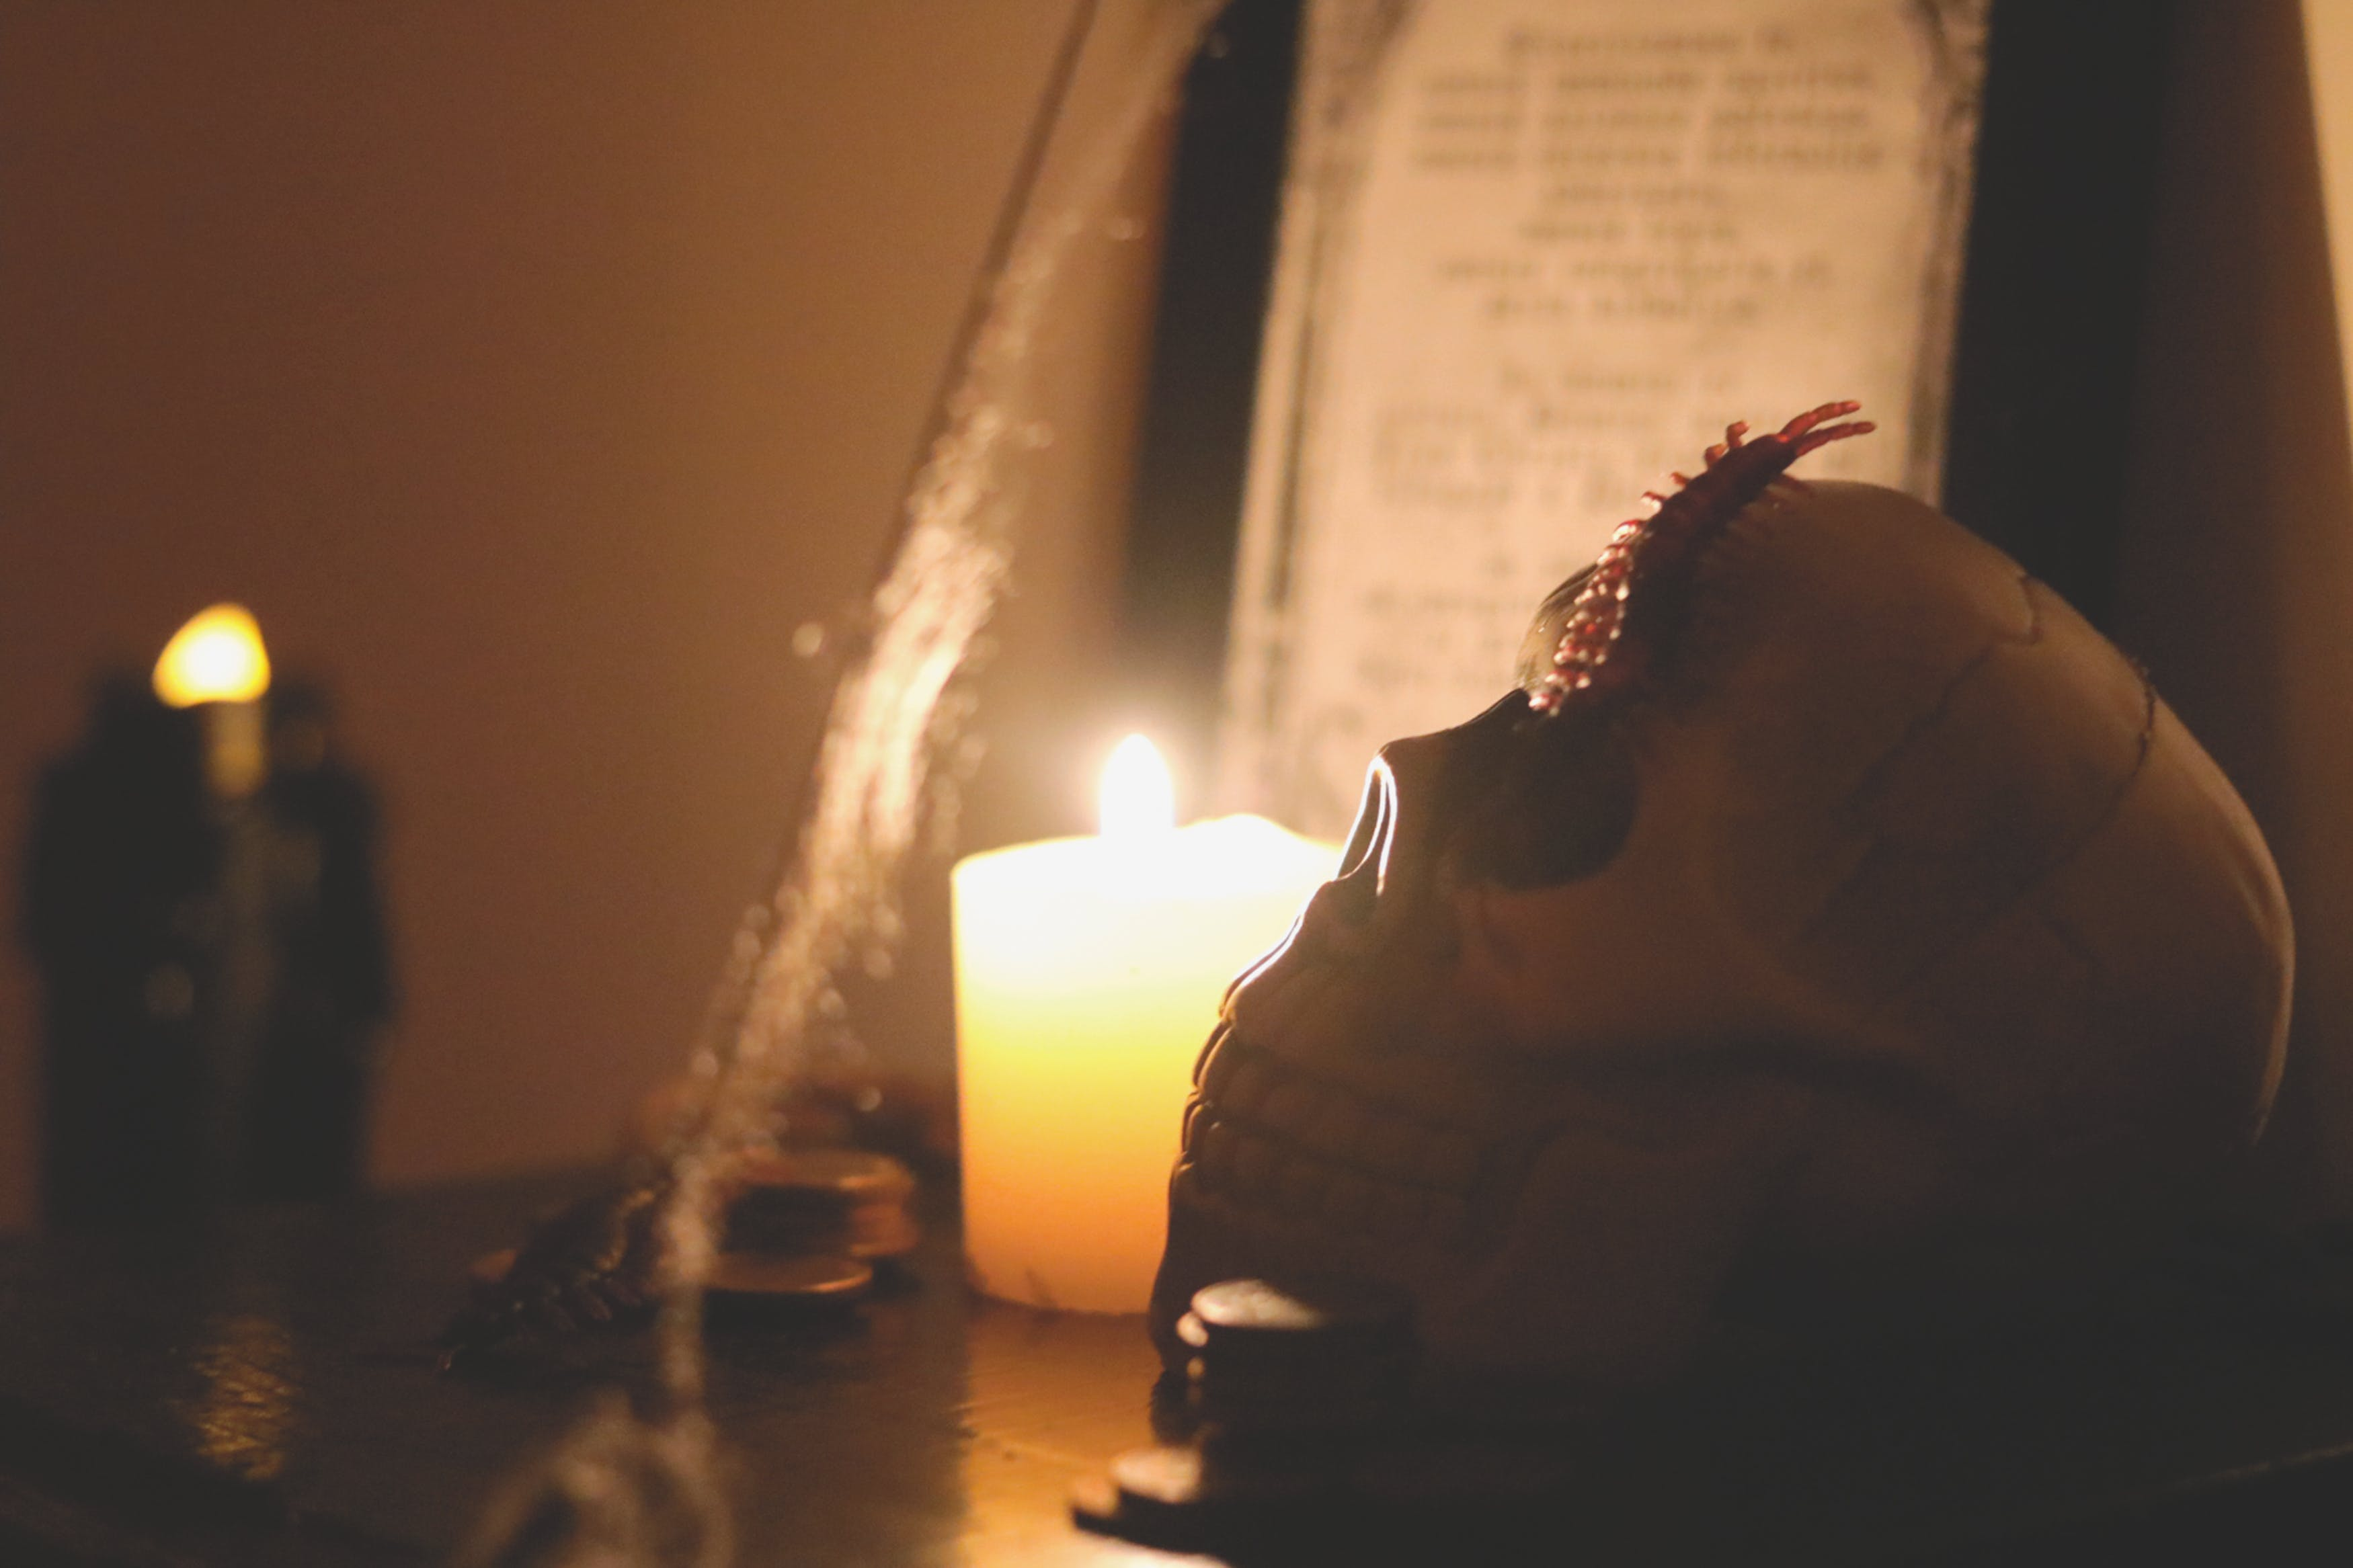 Free stock photo of candle light, candles, halloween, halloween party